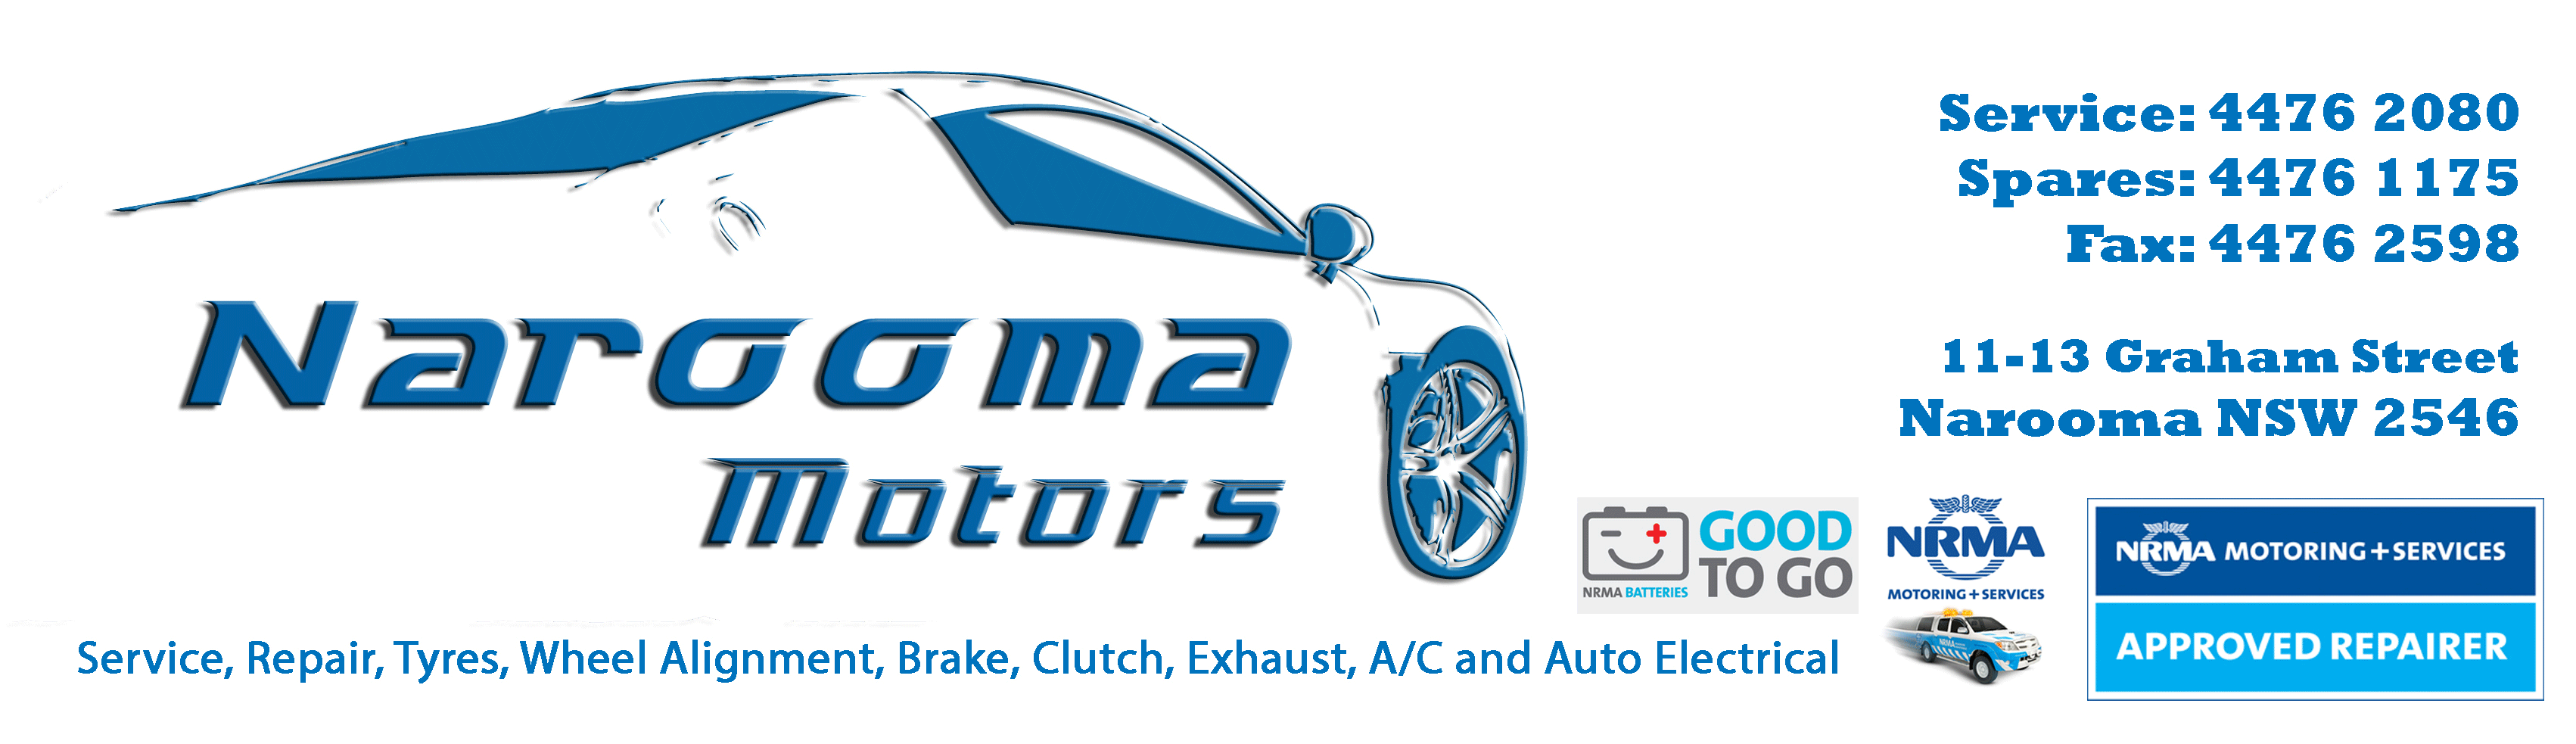 Nrma Approved Car Service